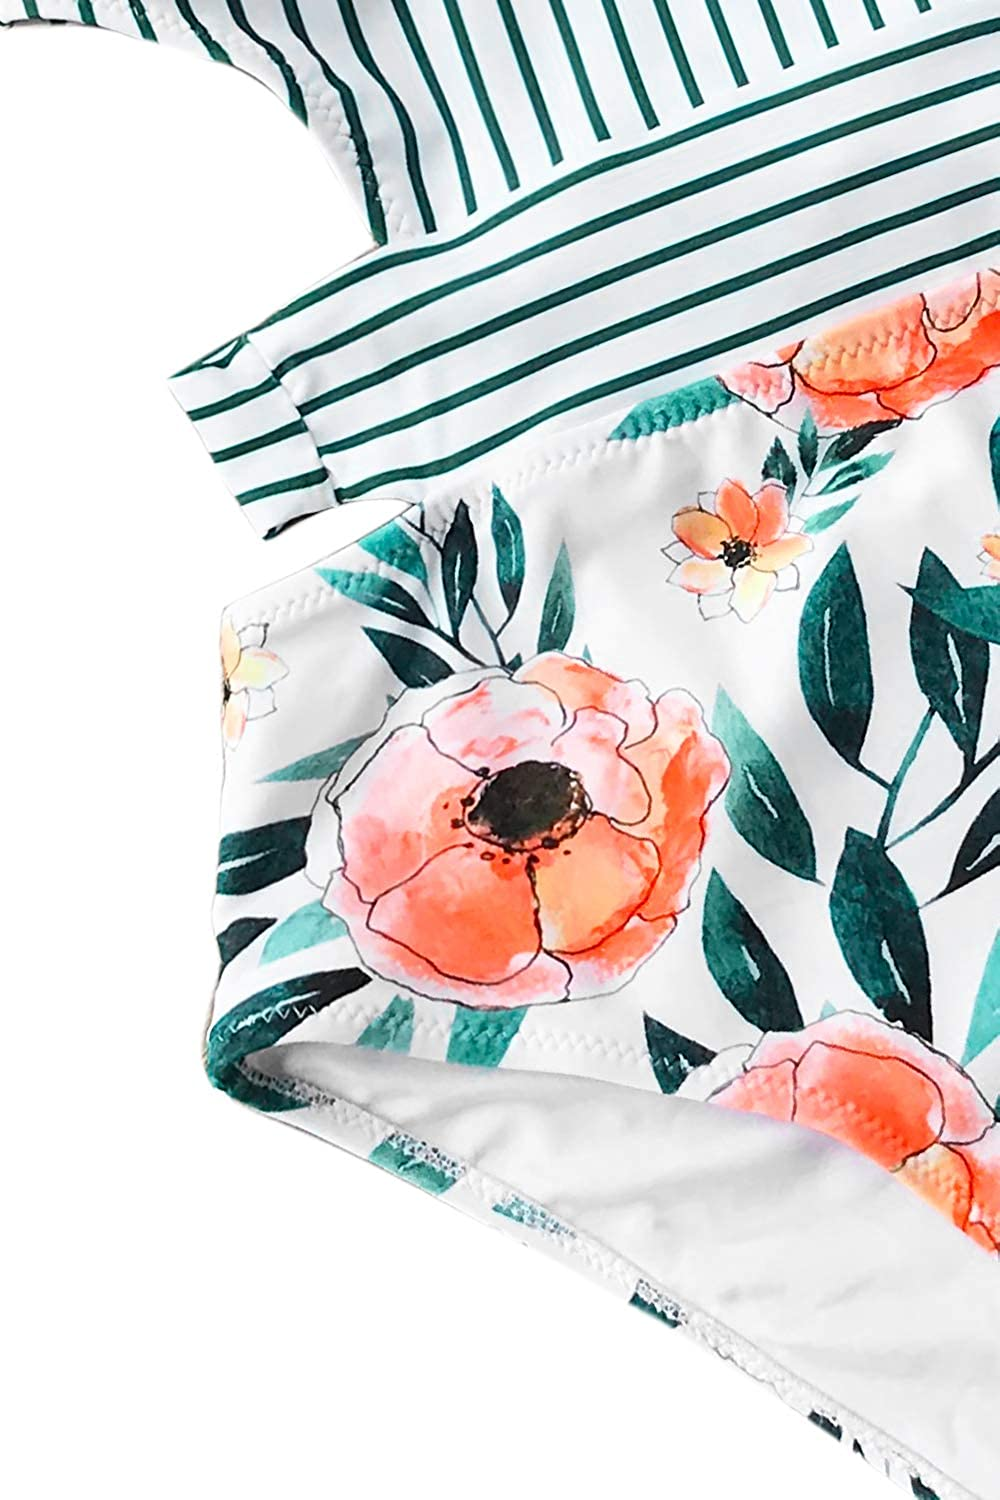 bd0070ca4c CUPSHE Womens Lilies Print Tank Top One-Piece Swimsuit CYY1100 Clothing &  Accessories Swim